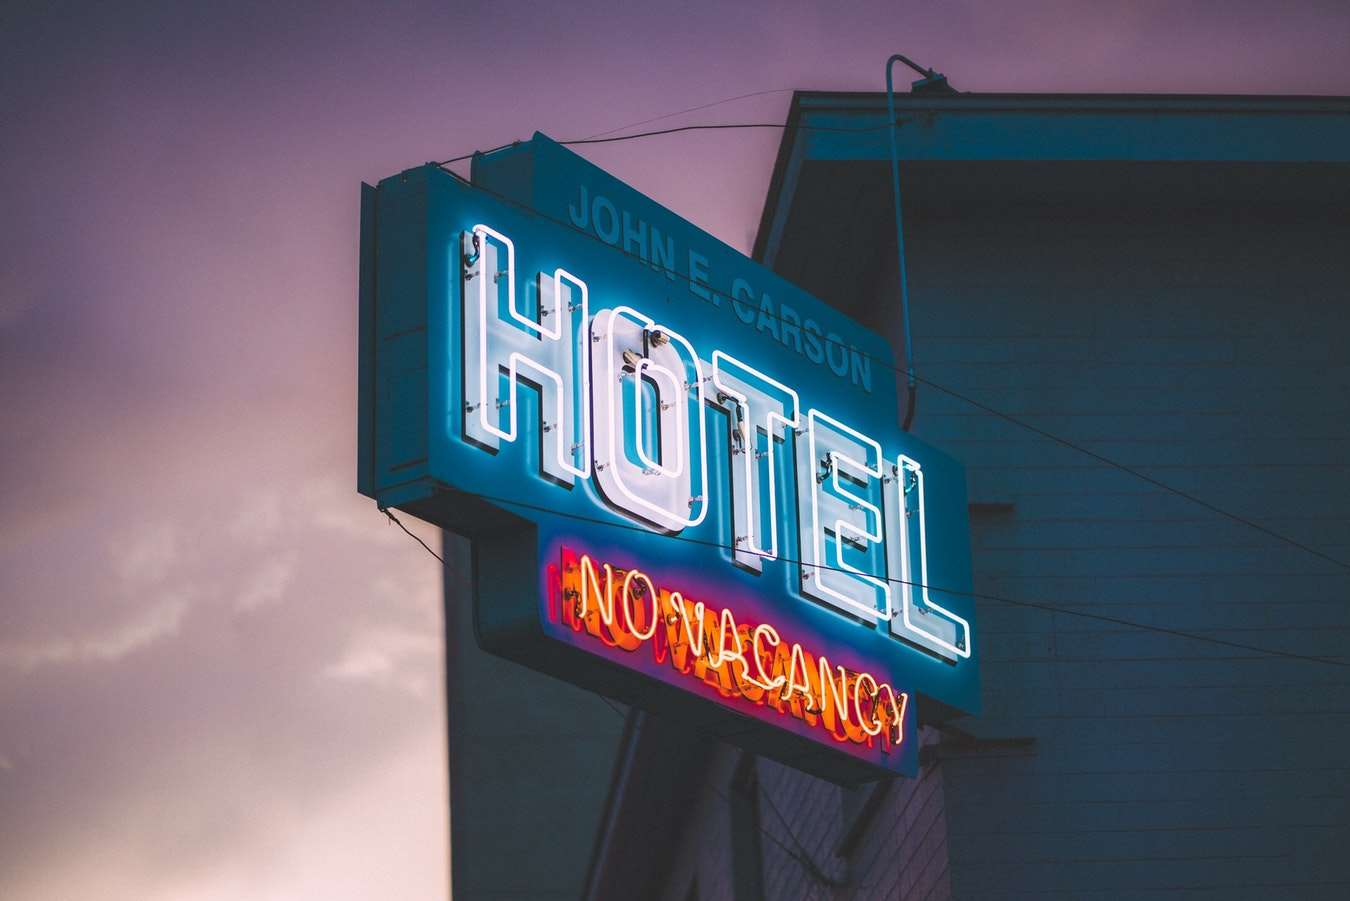 Top tips to improve hotel management